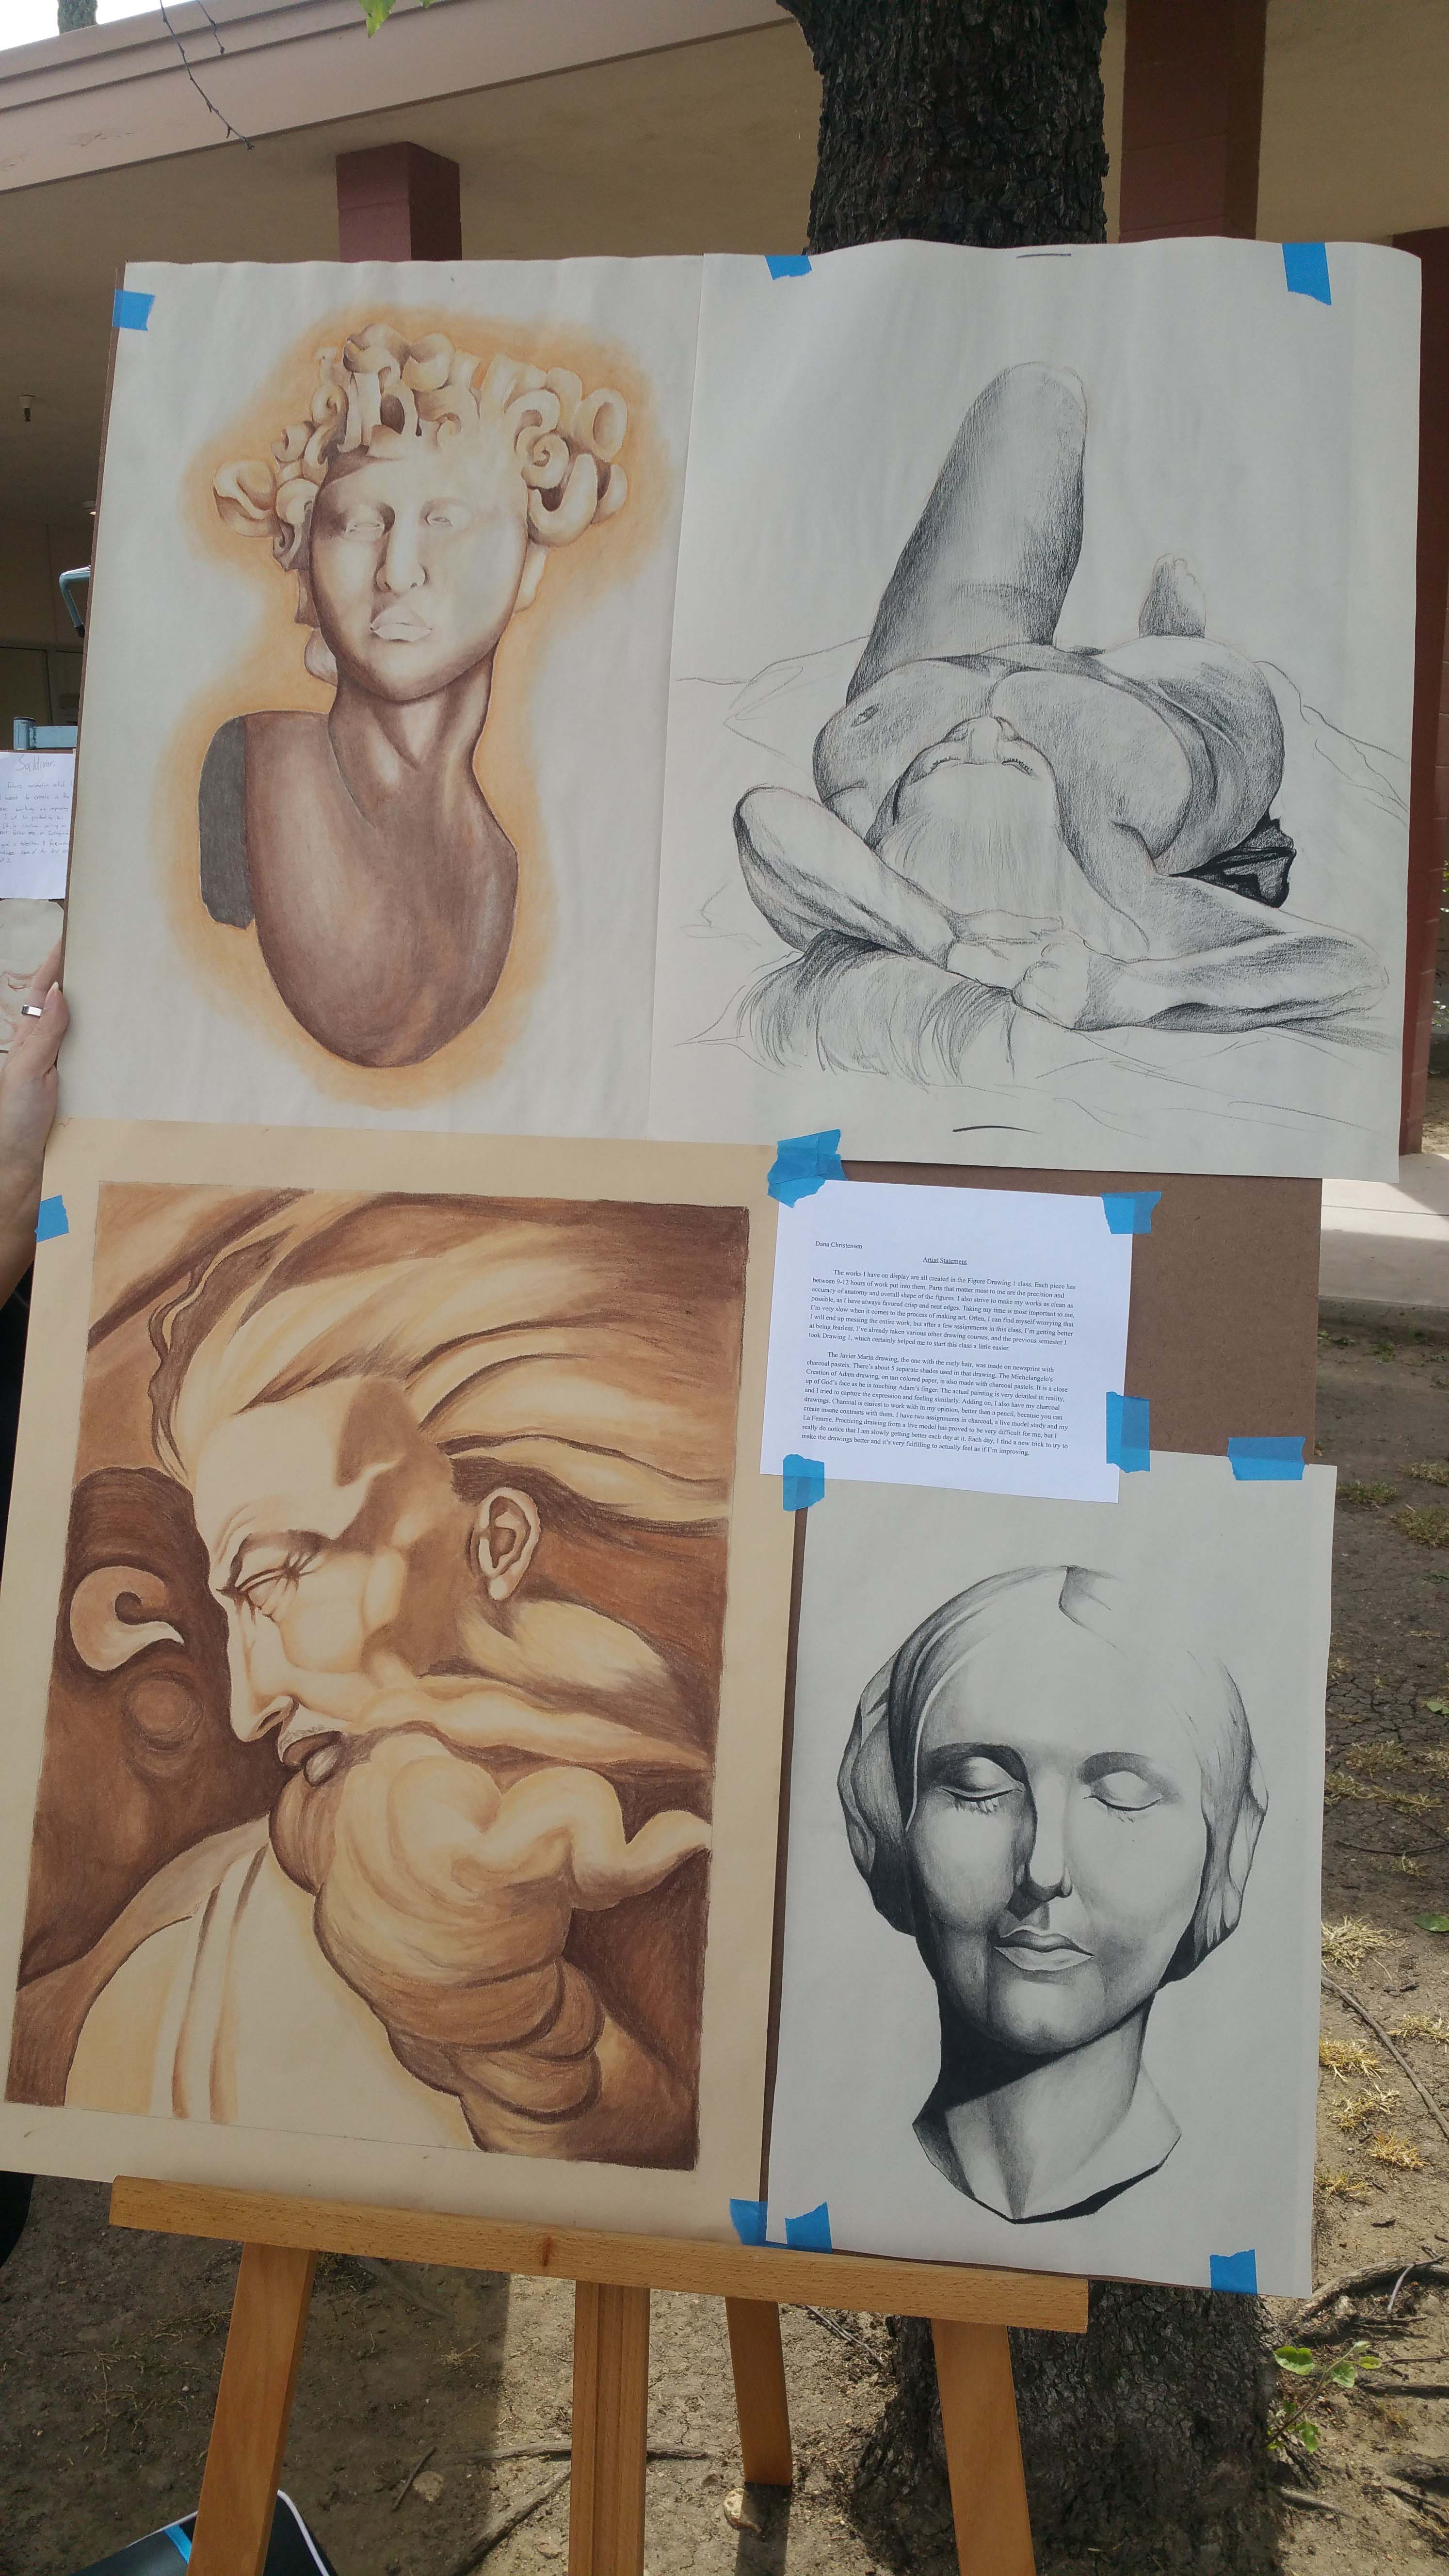 Art on display at the BC Spring Pop Up Art Show